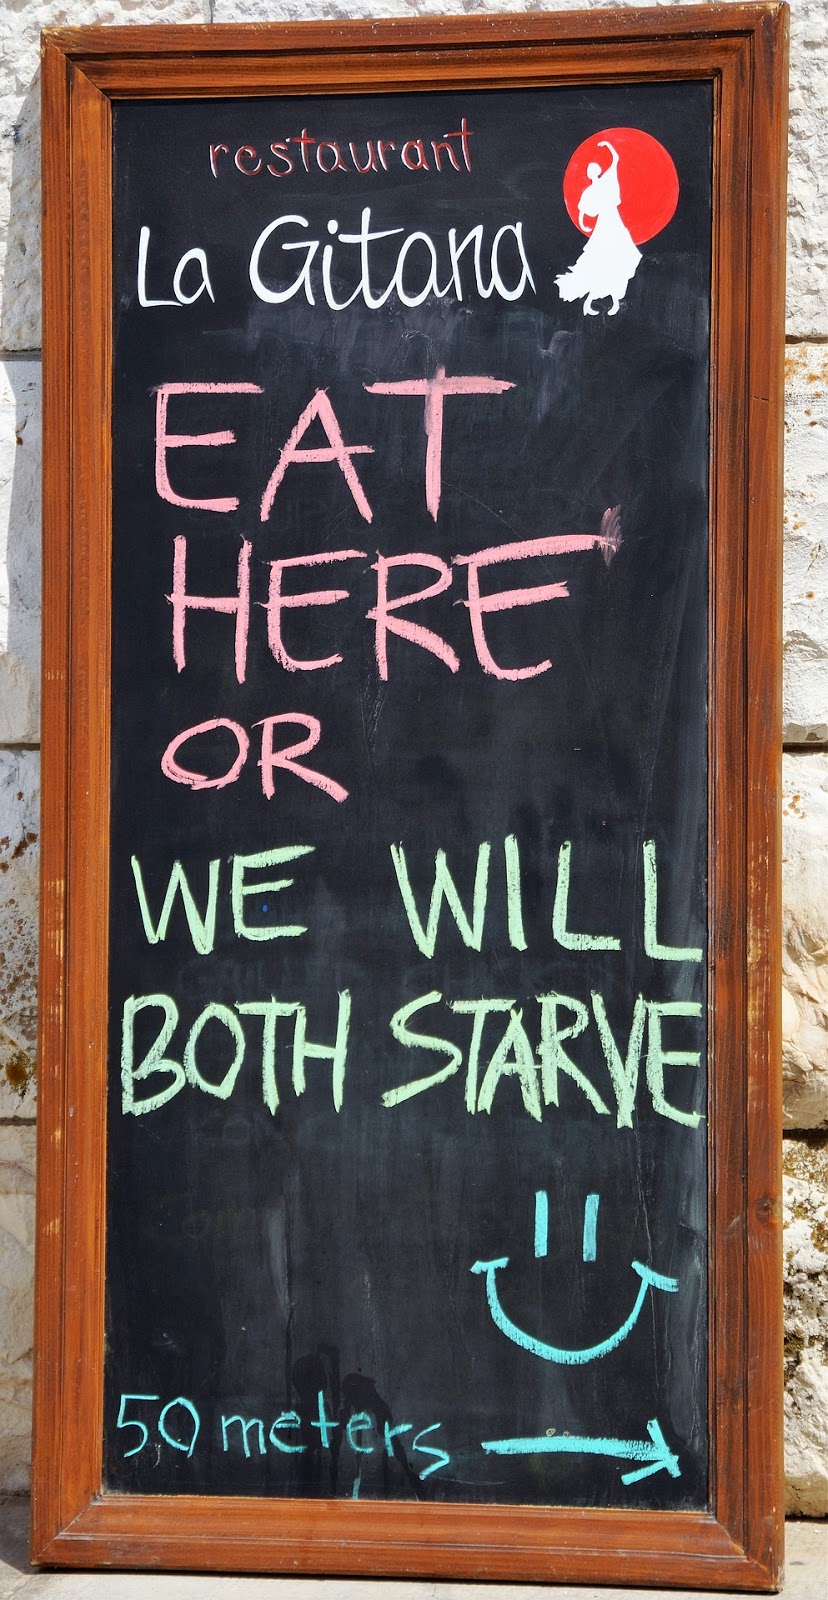 Funny restaurant advert board.